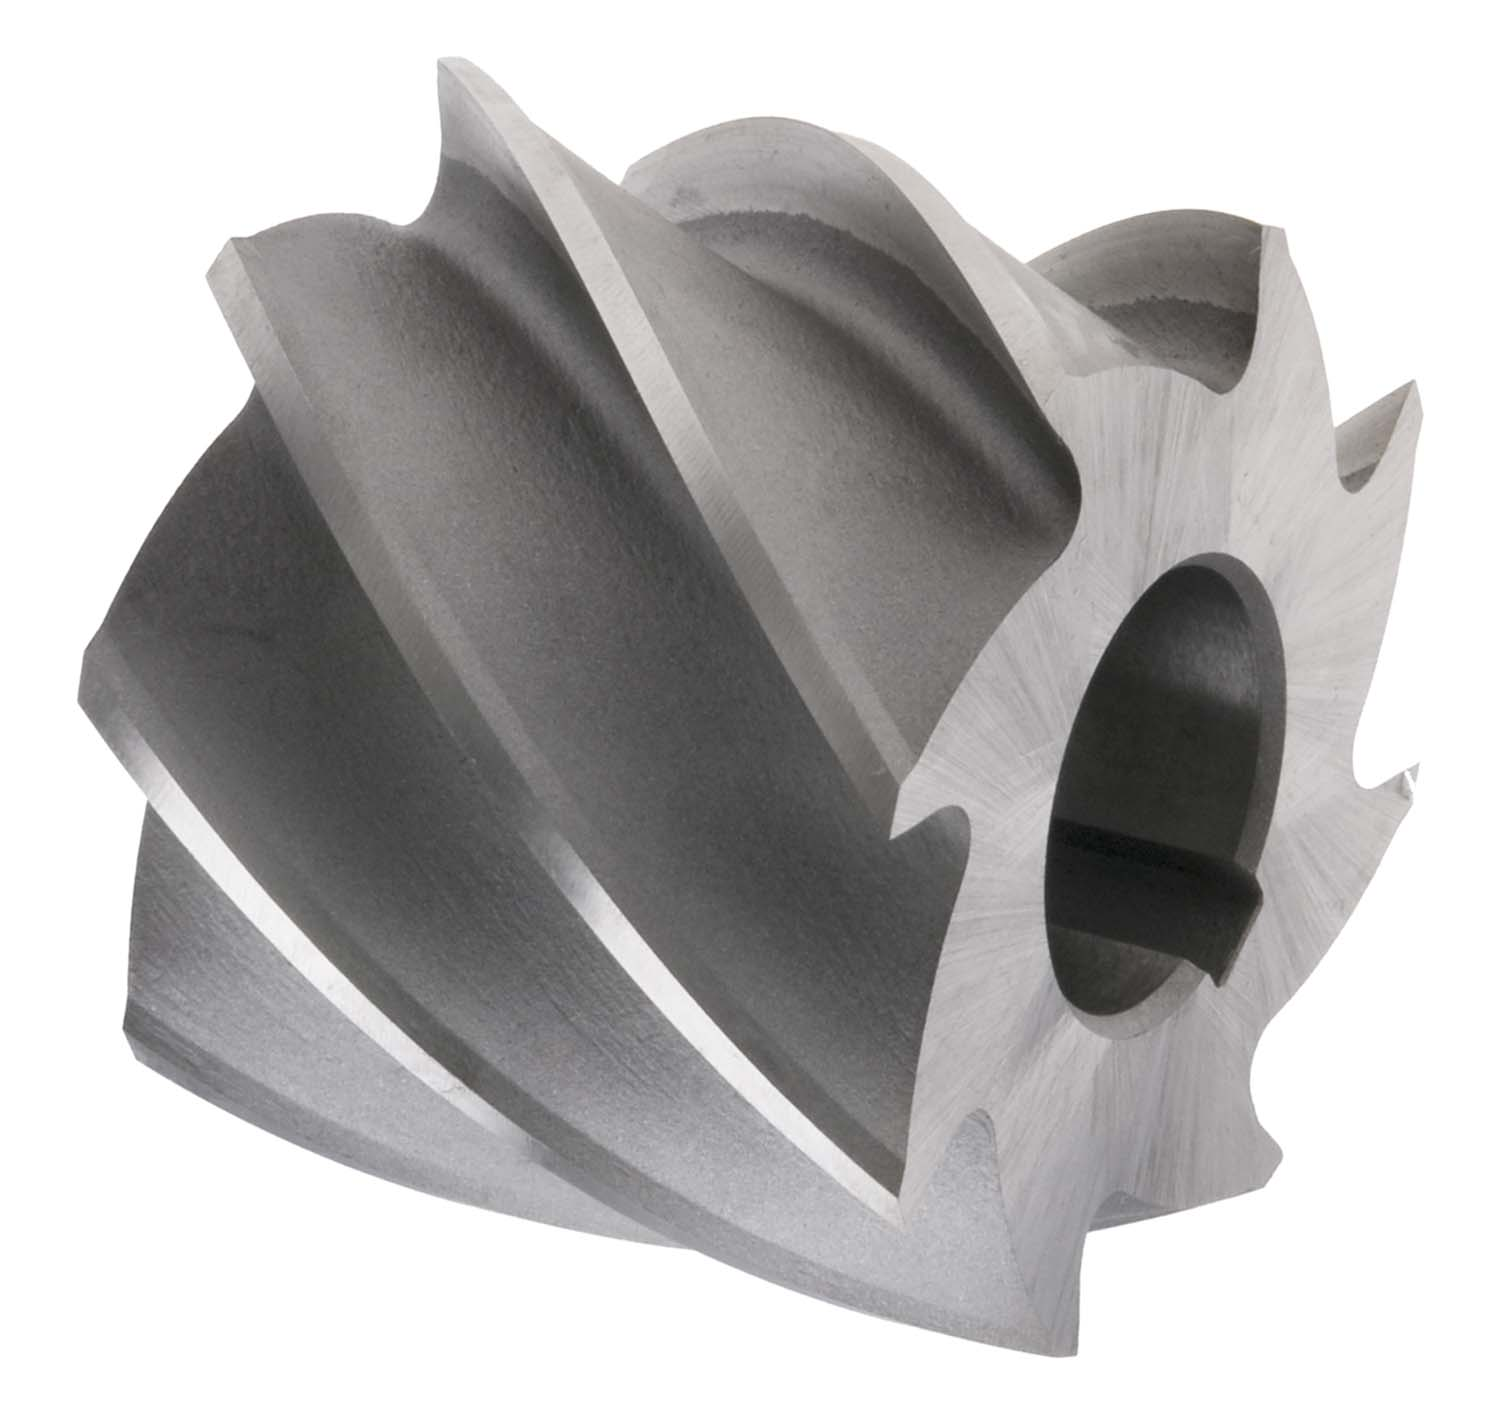 4 X 3 X 1-1/2 Heavy Duty Plain Milling Cutter, High Speed Steel